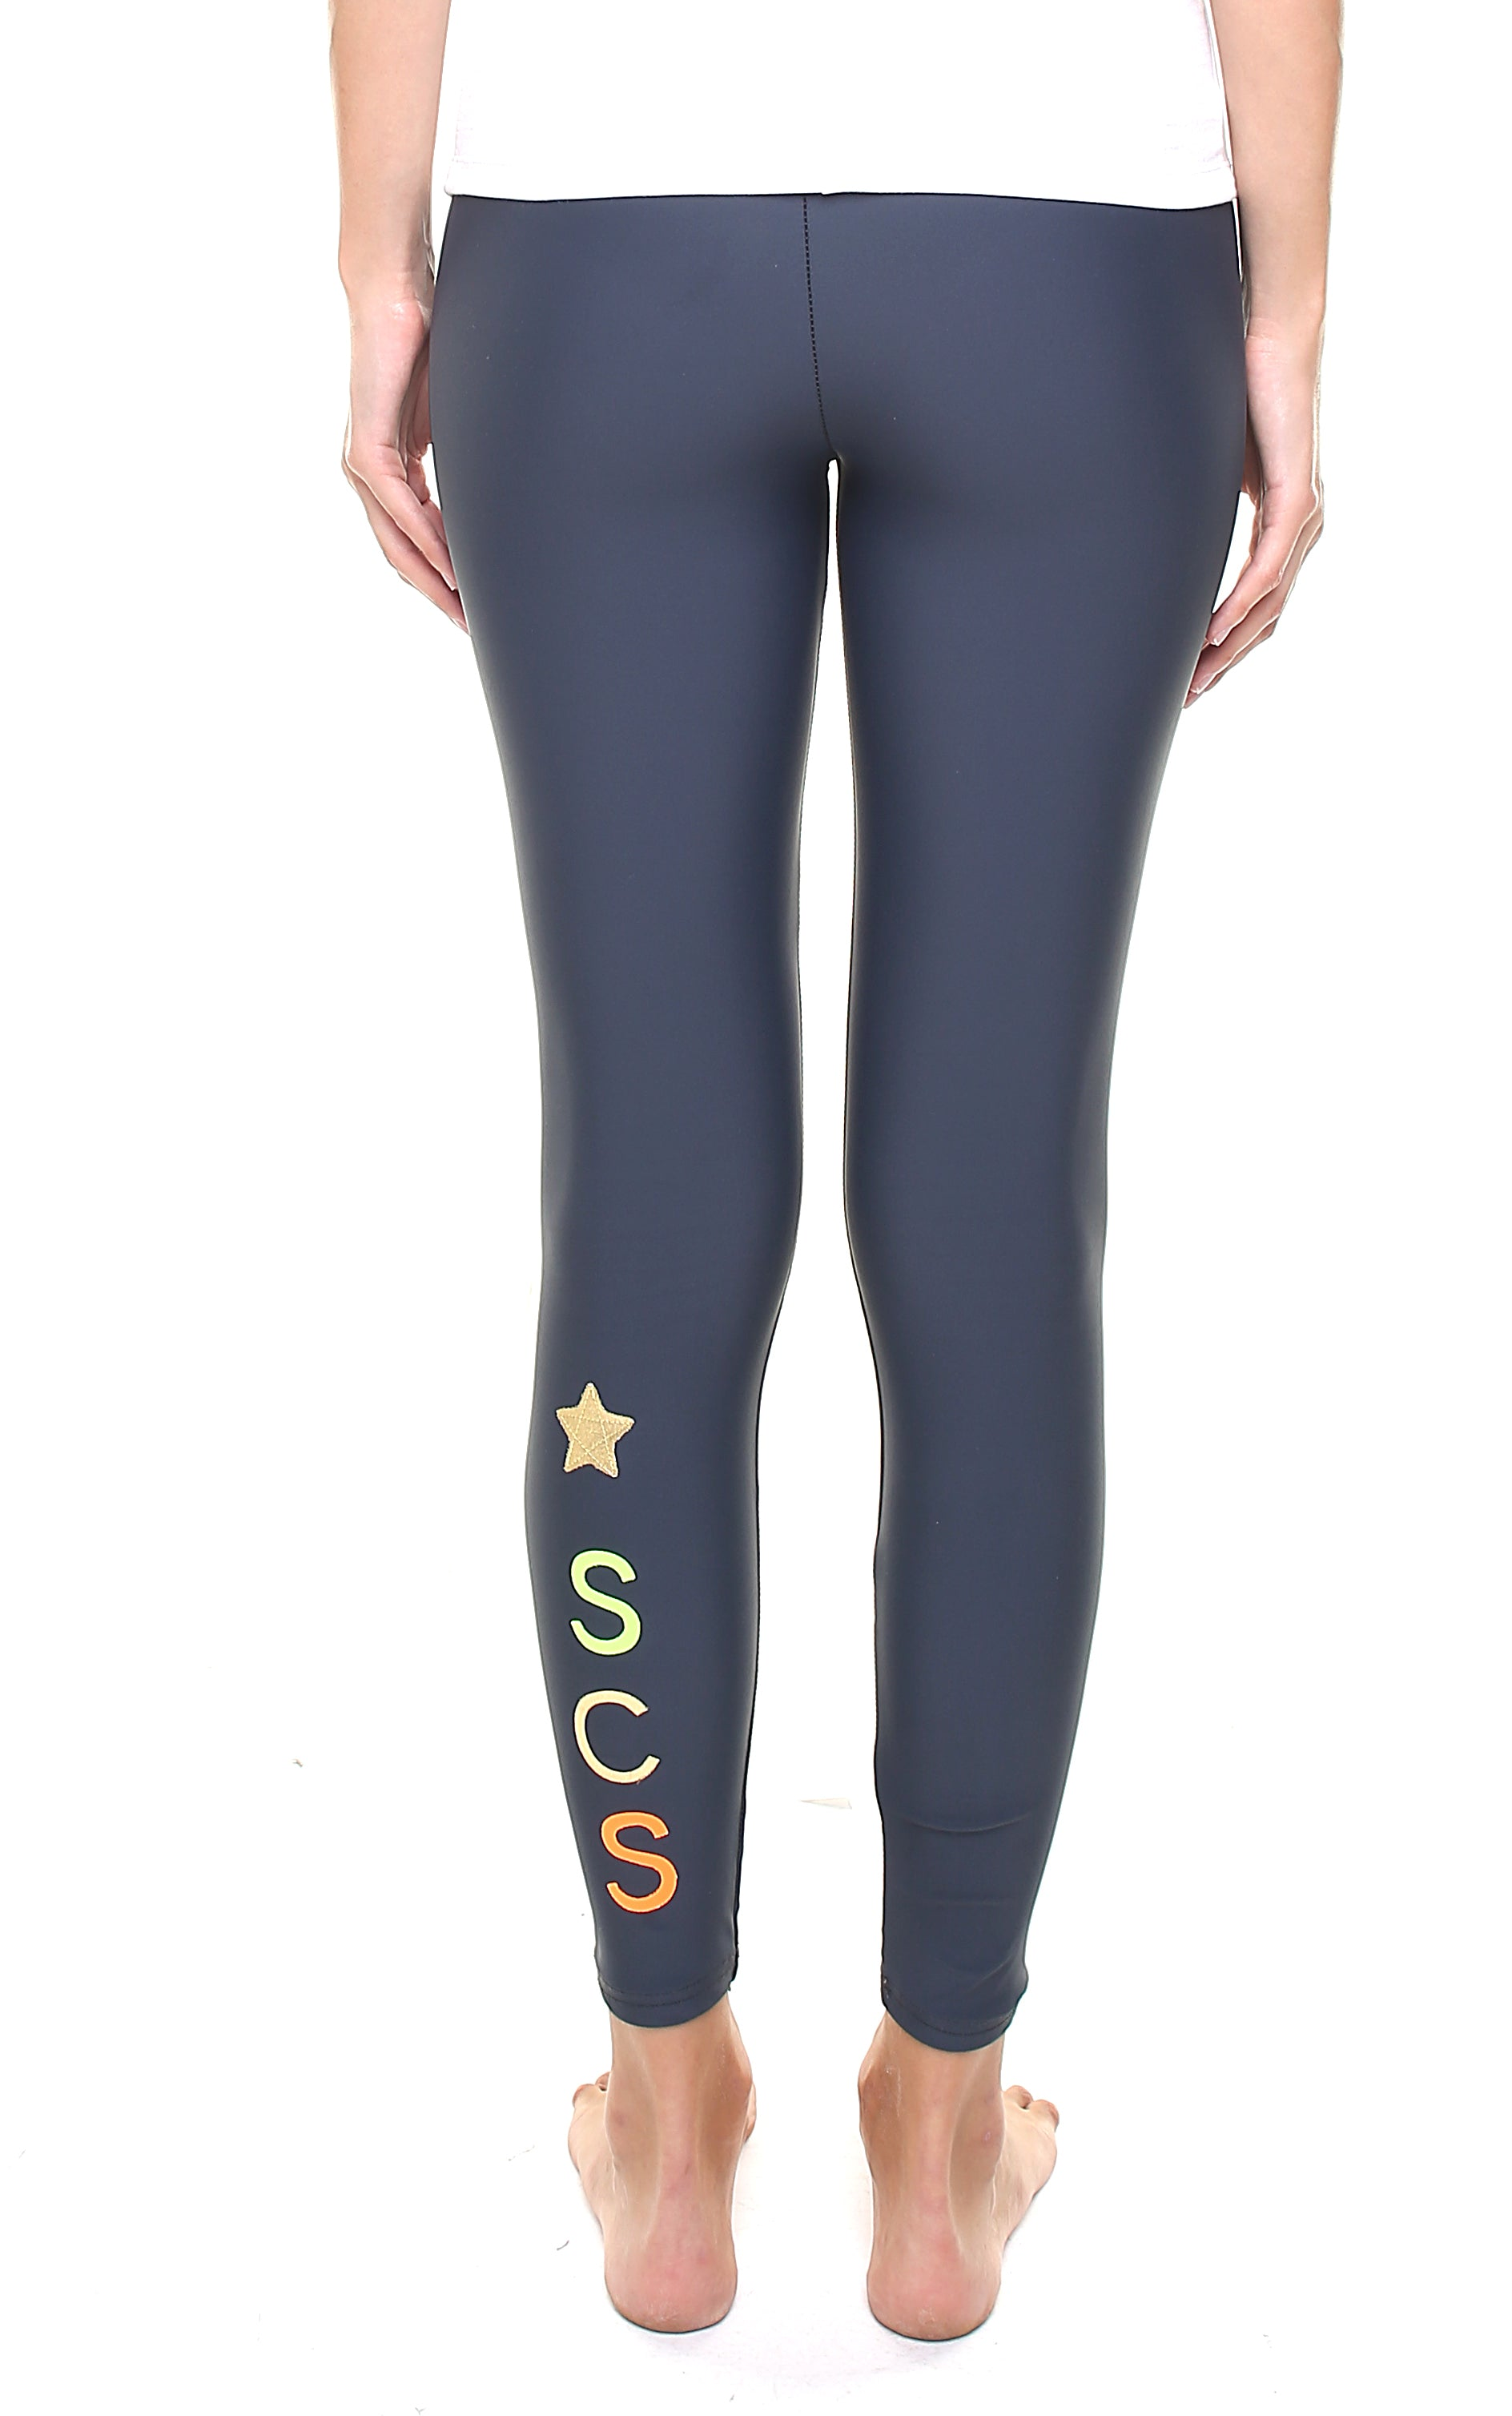 Leggings personalizzato con una stella e lettere applicate in verticale